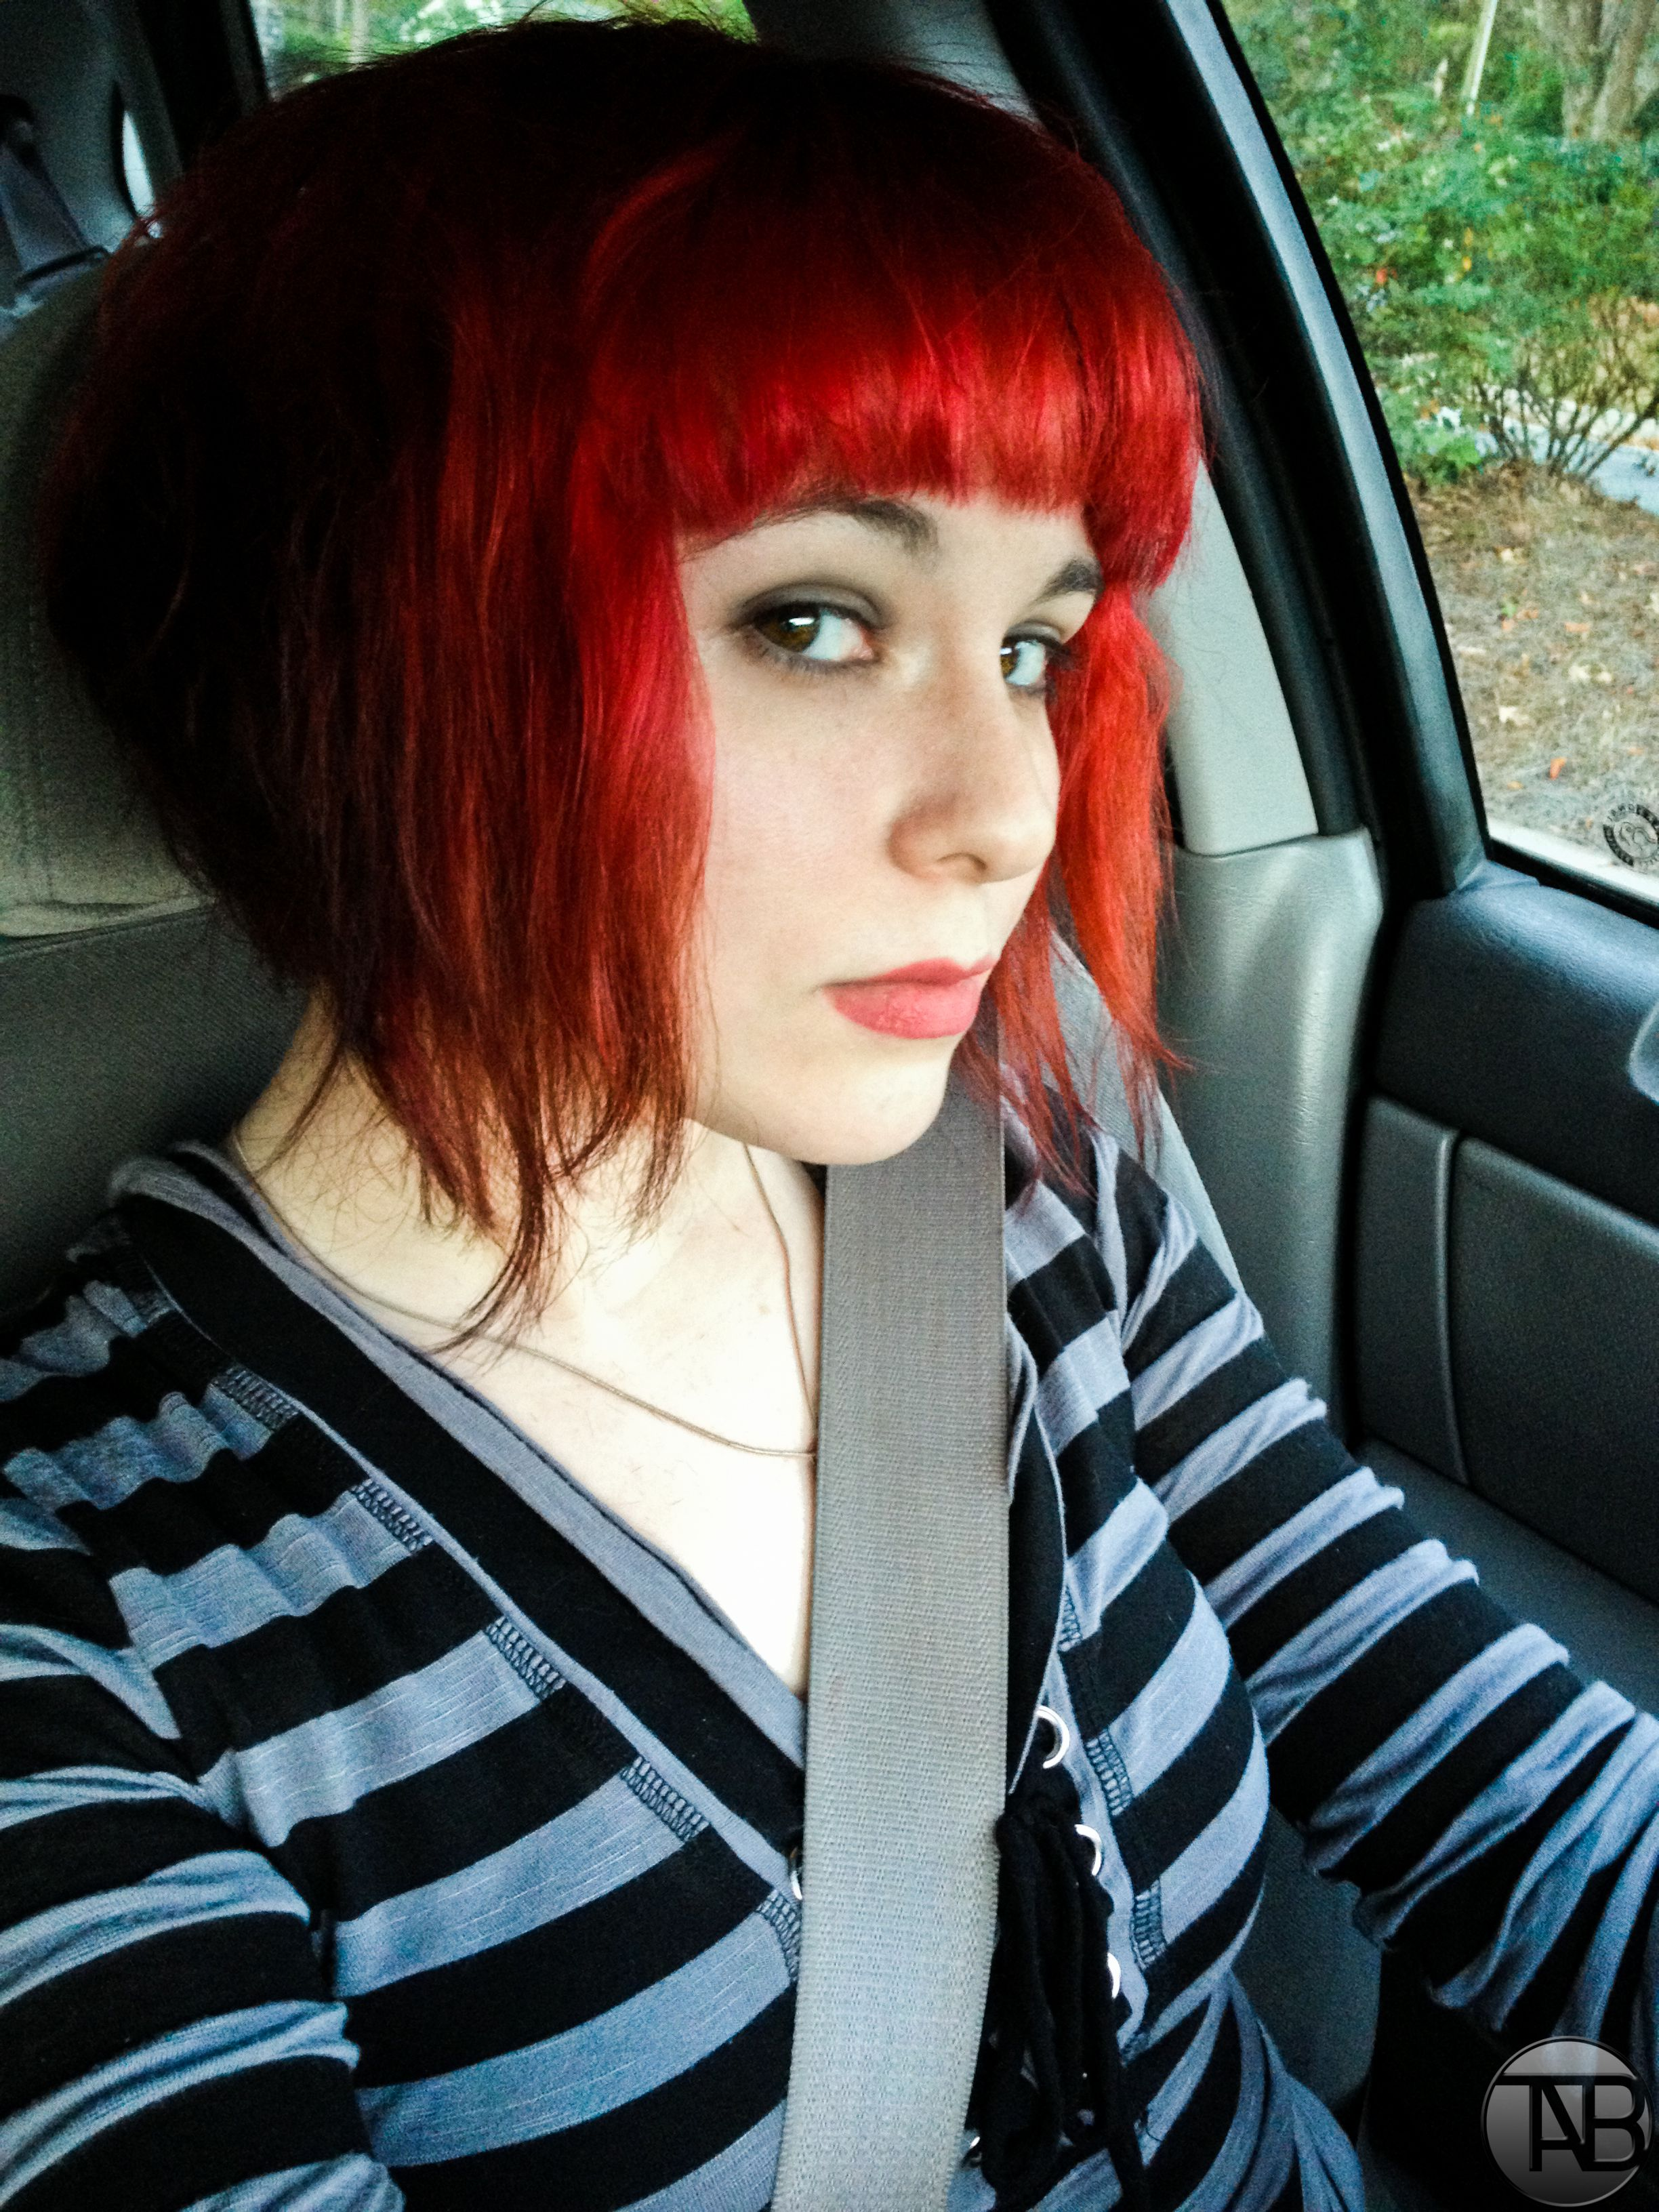 Just cut my hair ramona flowers style loving it d hair and stuff